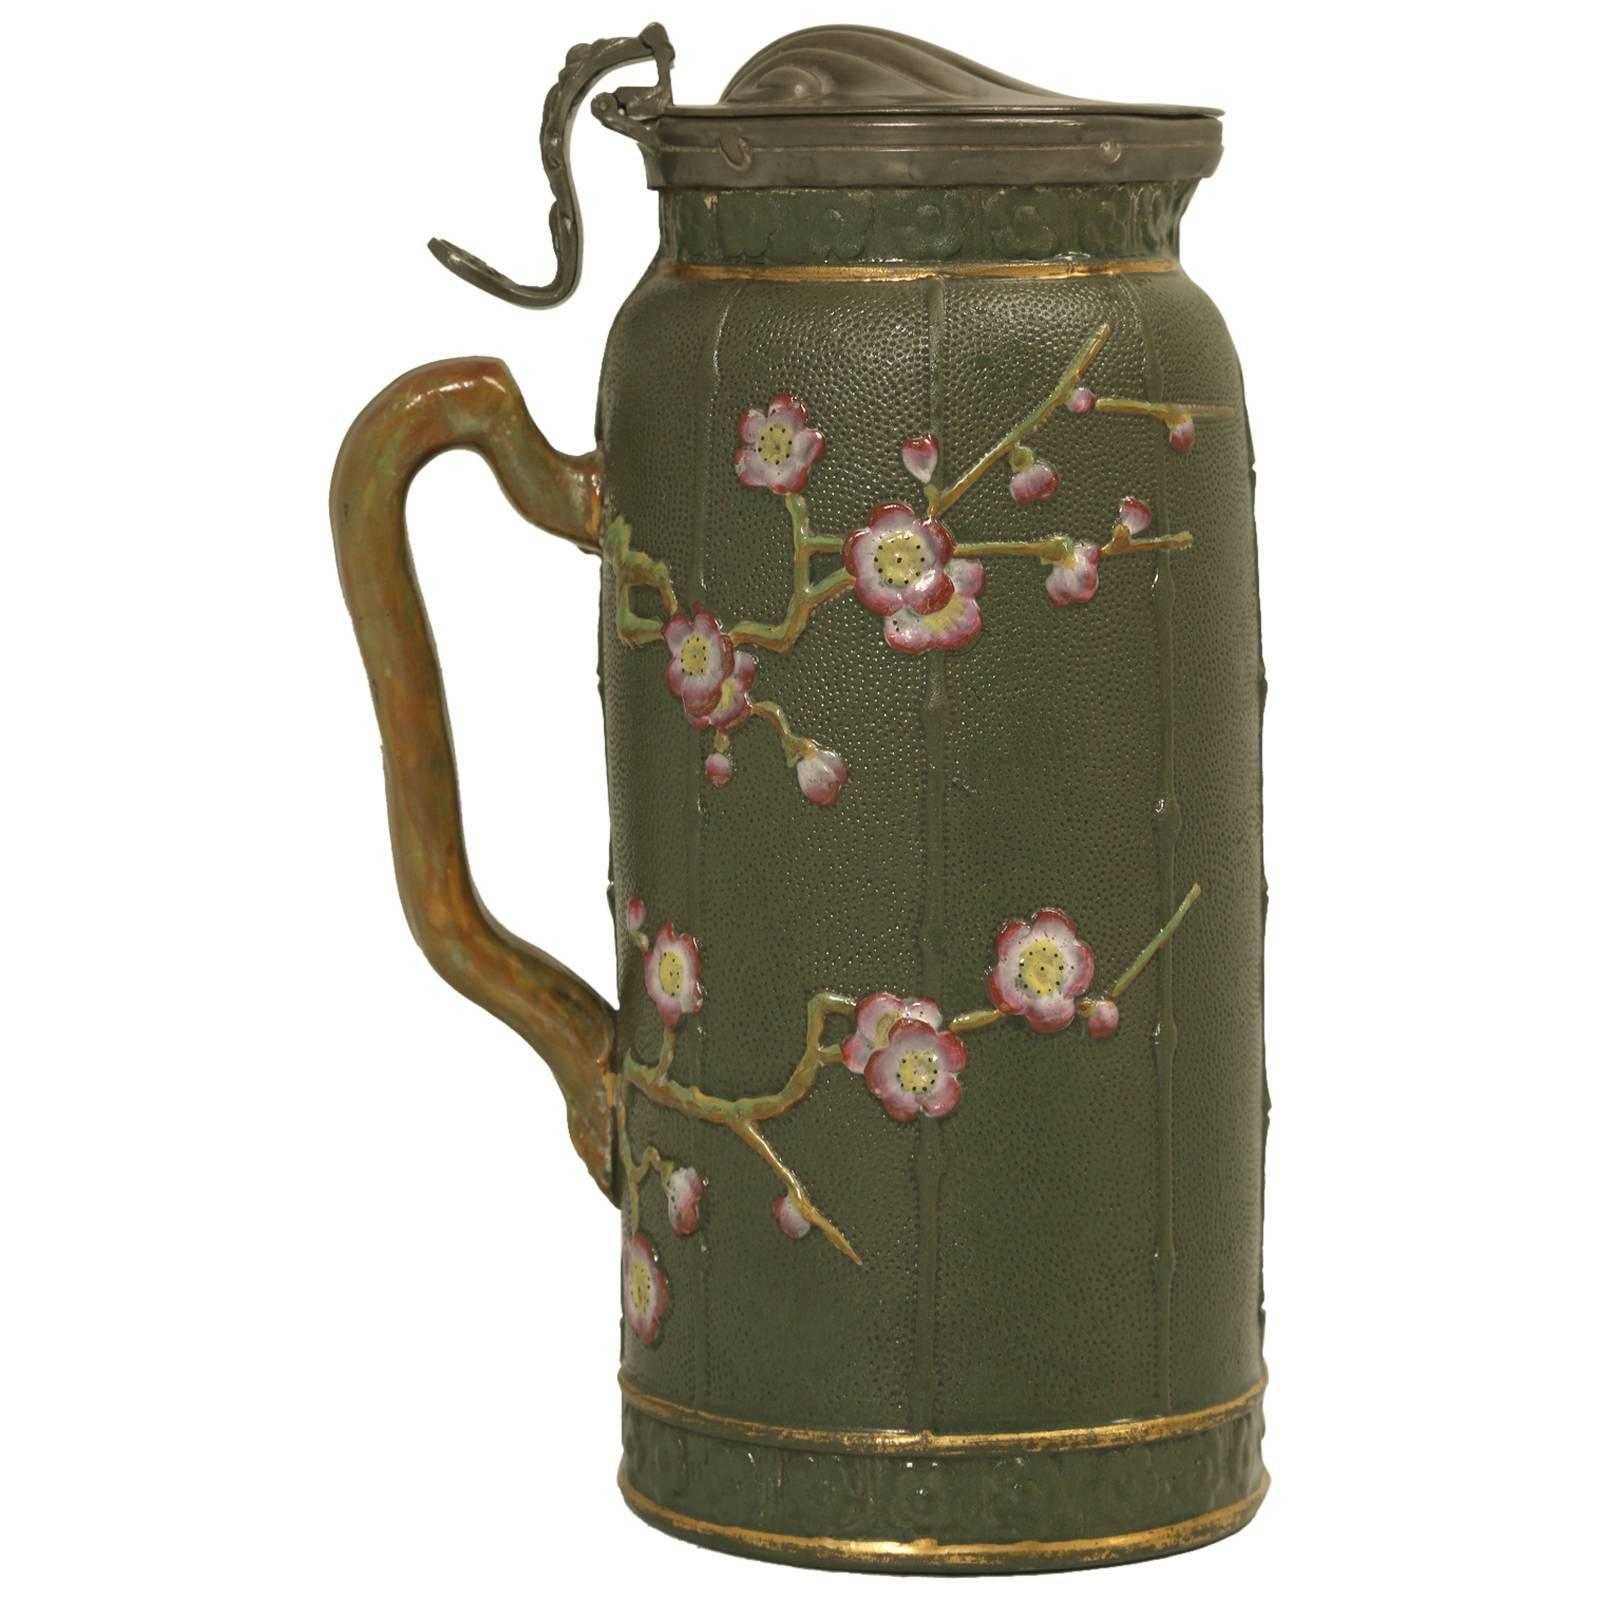 English Stafforshire Pottery Pitcher in a Chinese Chippendale Style